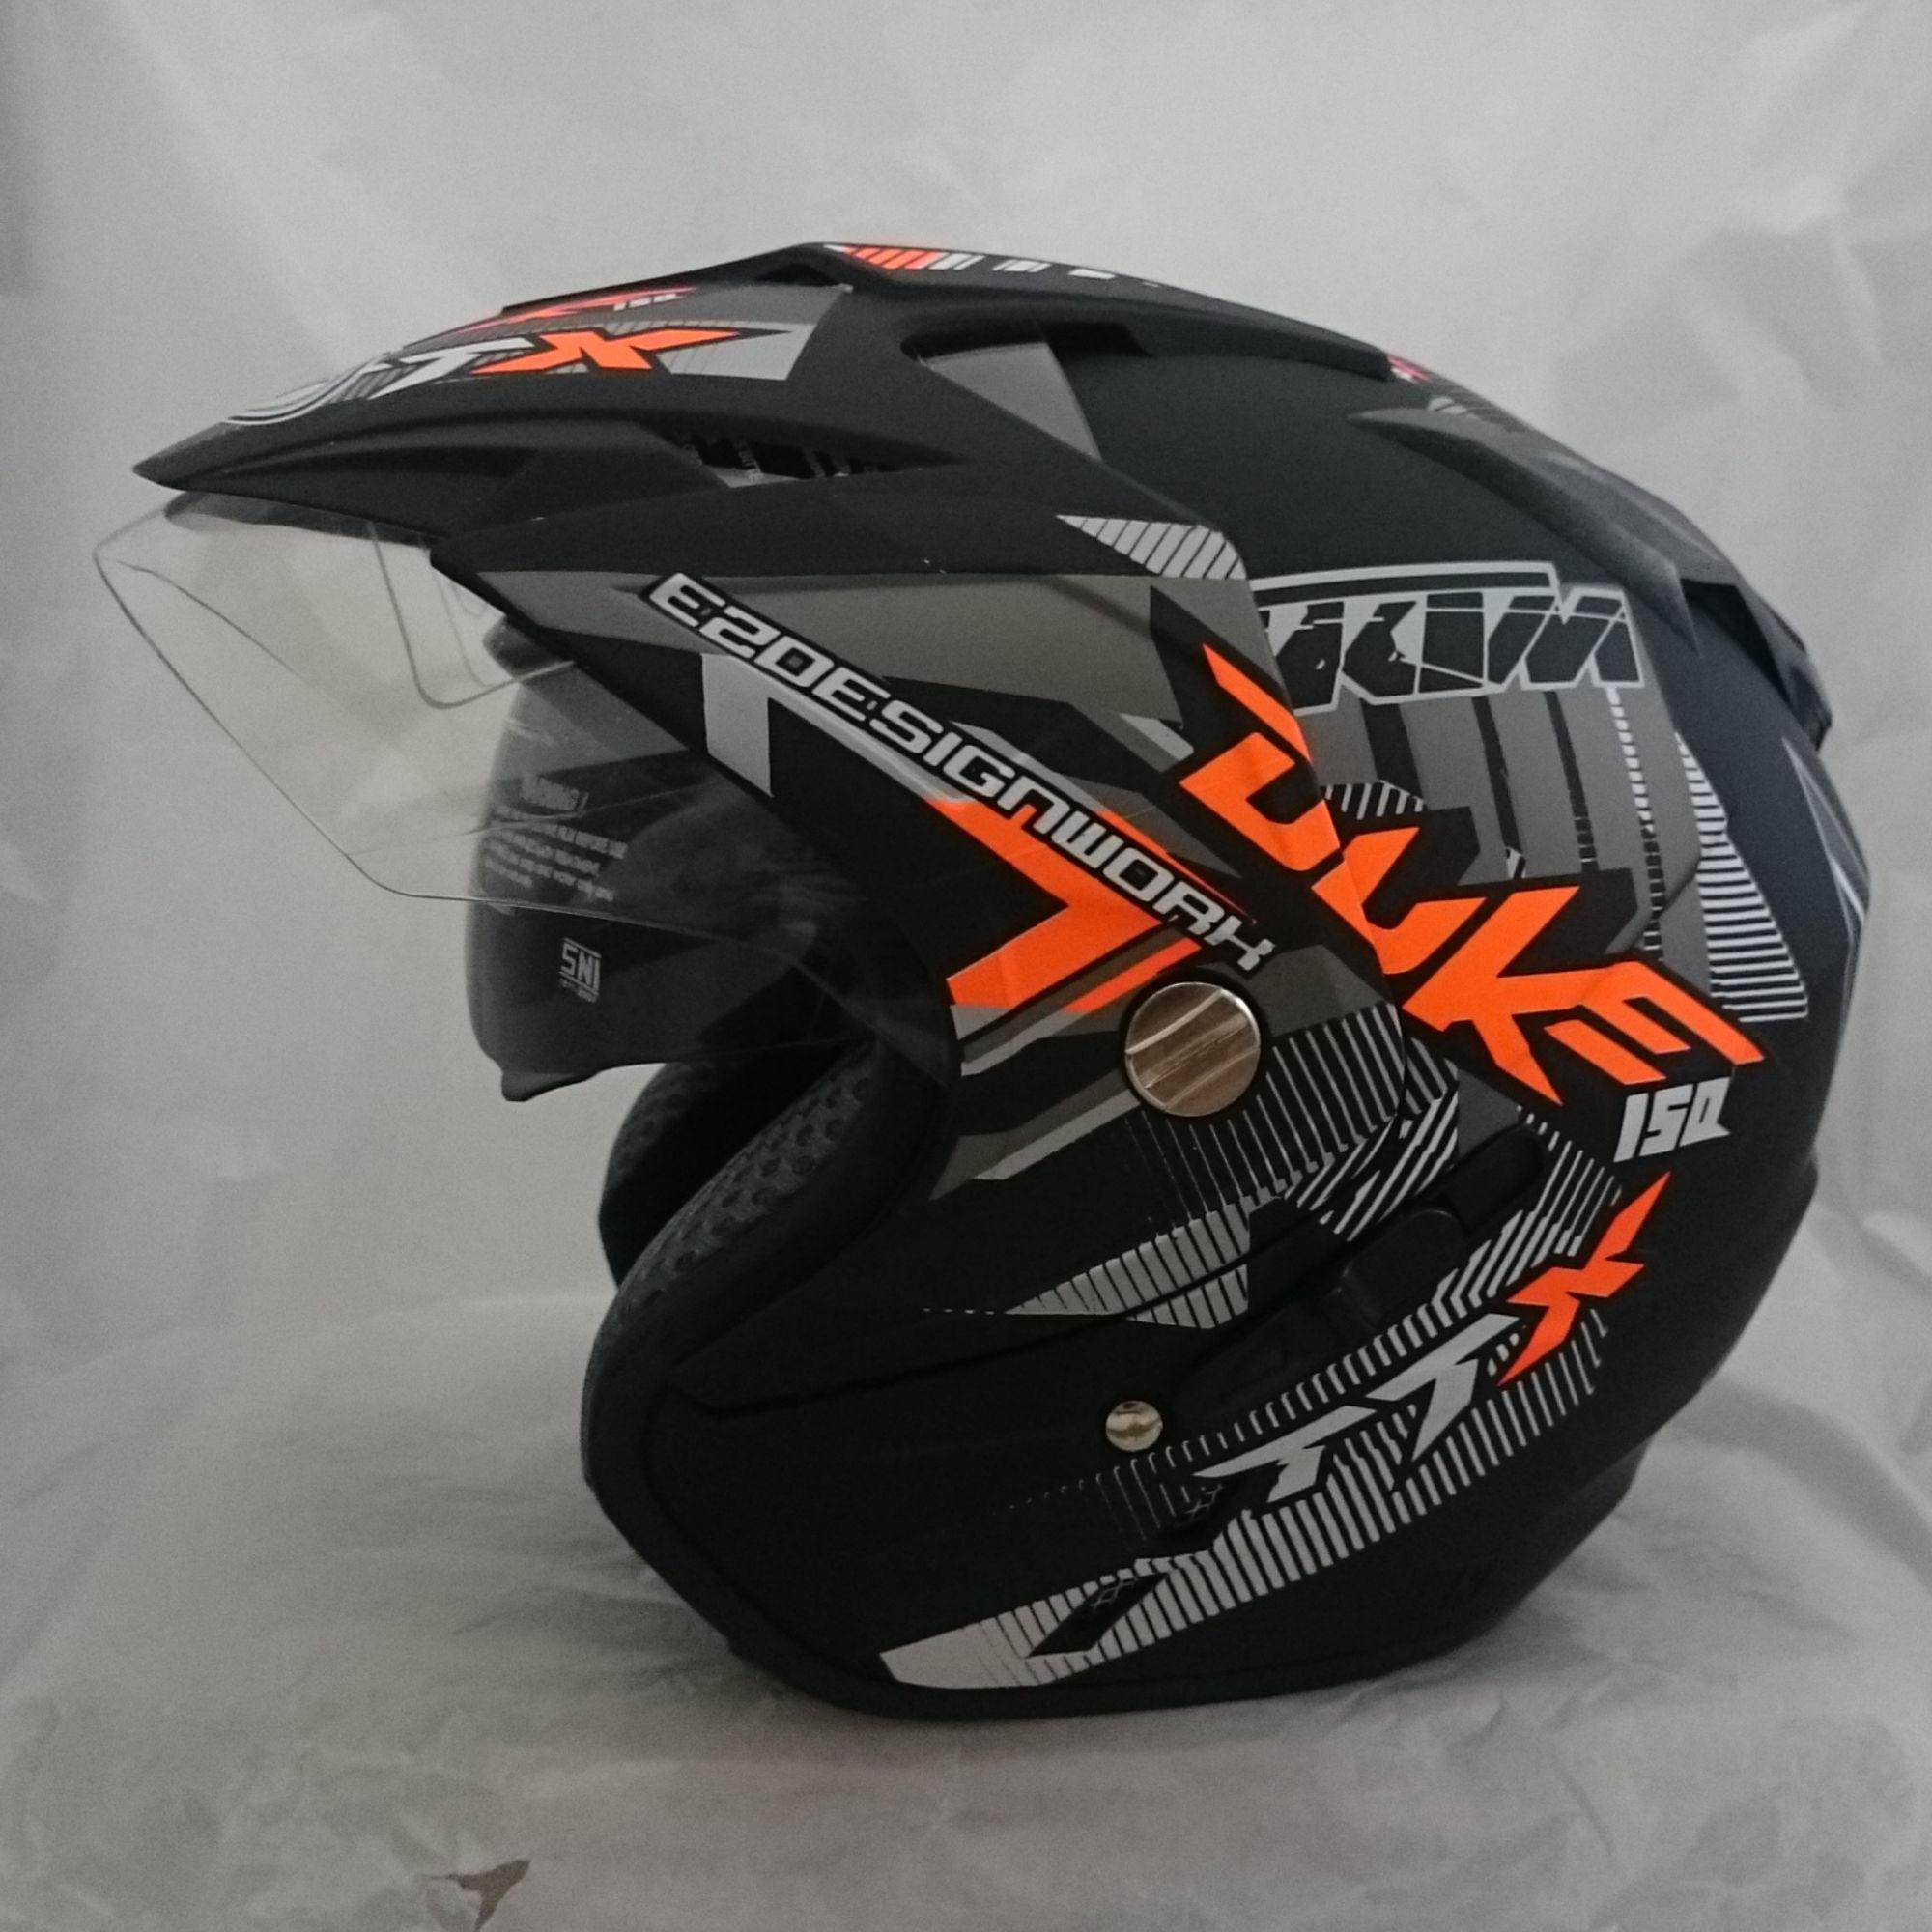 Helm DMN 2 kaca jp-7 (Double visor) Duke orange